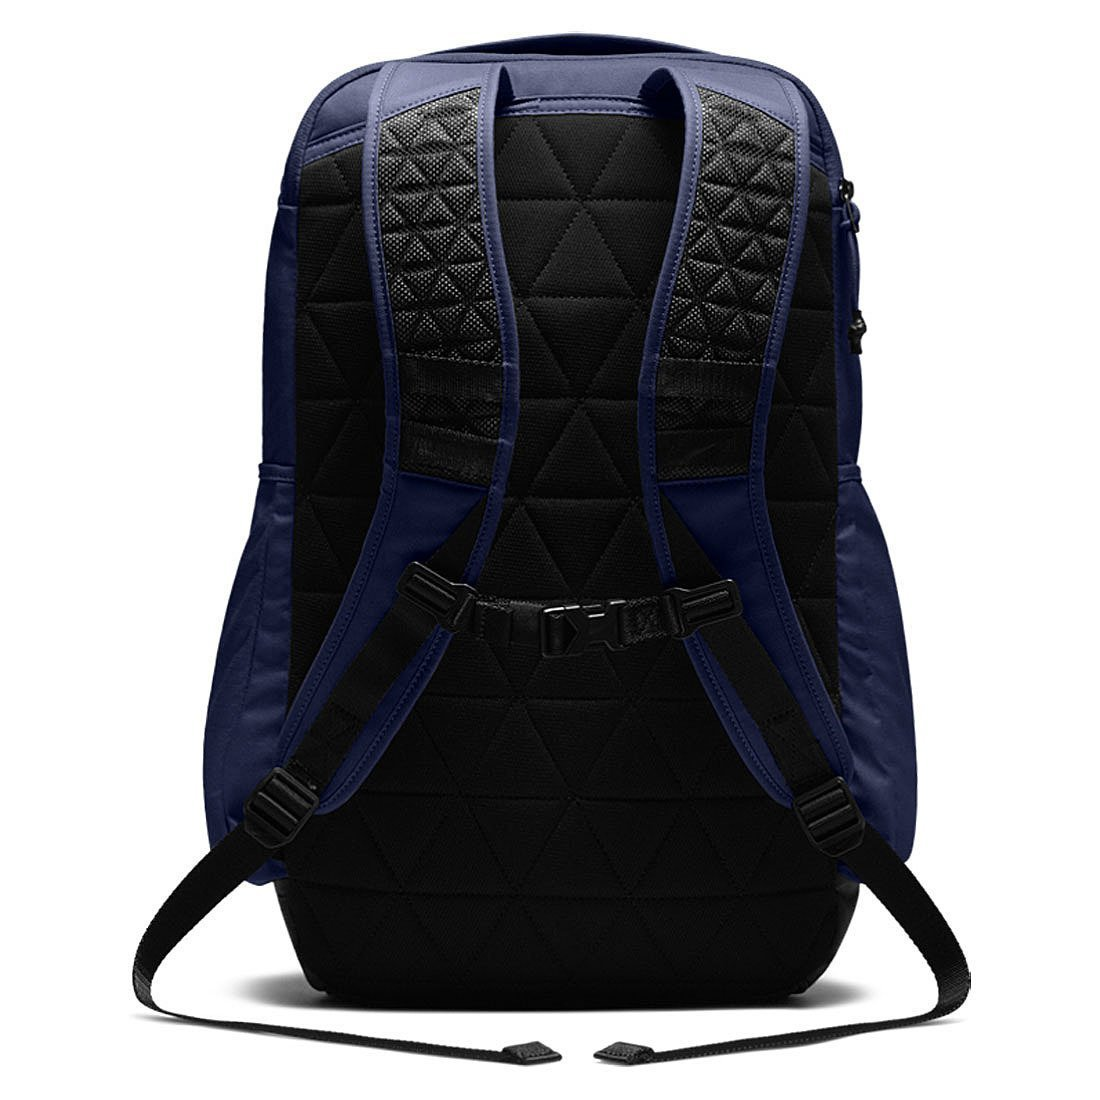 bada8986621 Nike 25 Ltrs Midnight Navy/Black/Thunder Blue Casual Backpack (BA5539-410):  Amazon.in: Bags, Wallets & Luggage